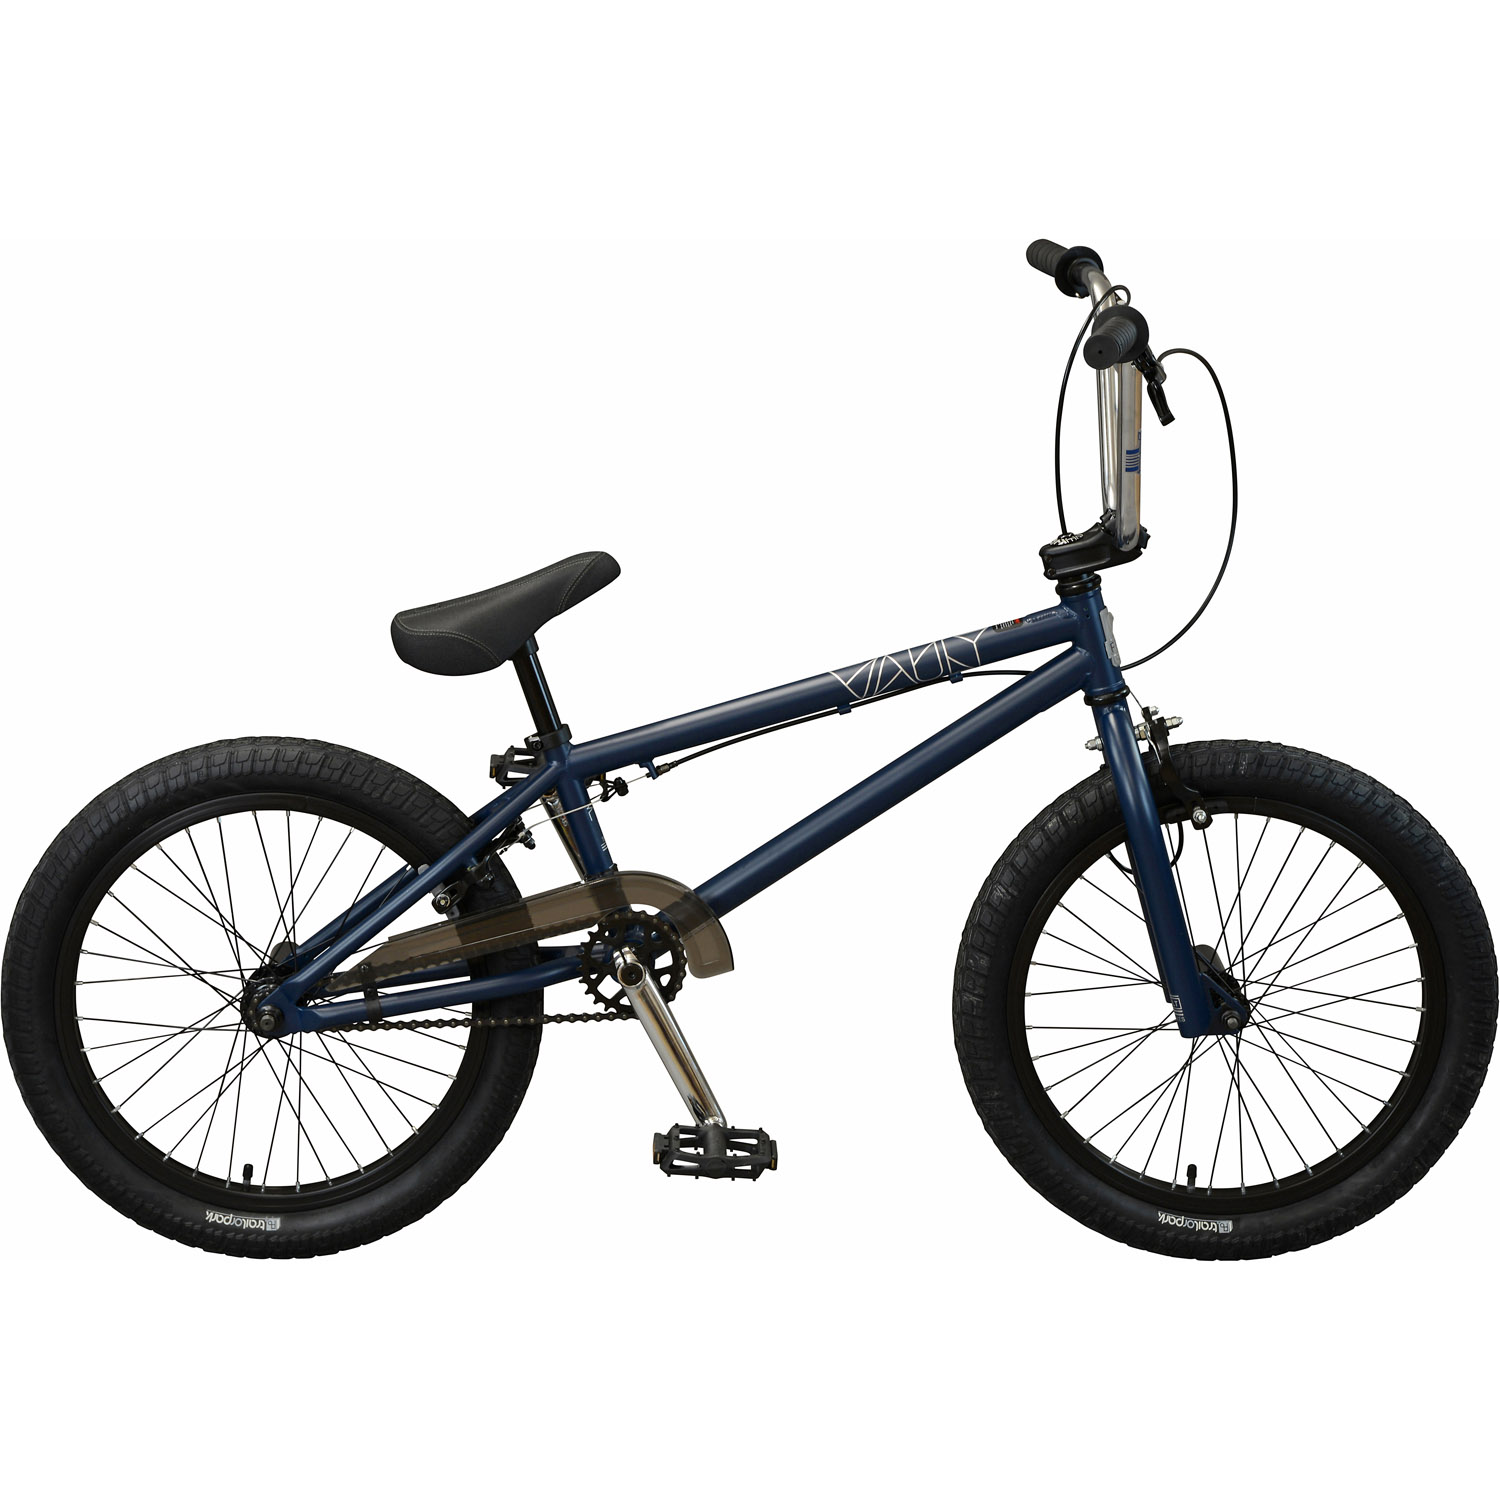 felt vault bmx bike 20 zoll blau online shop zweirad. Black Bedroom Furniture Sets. Home Design Ideas